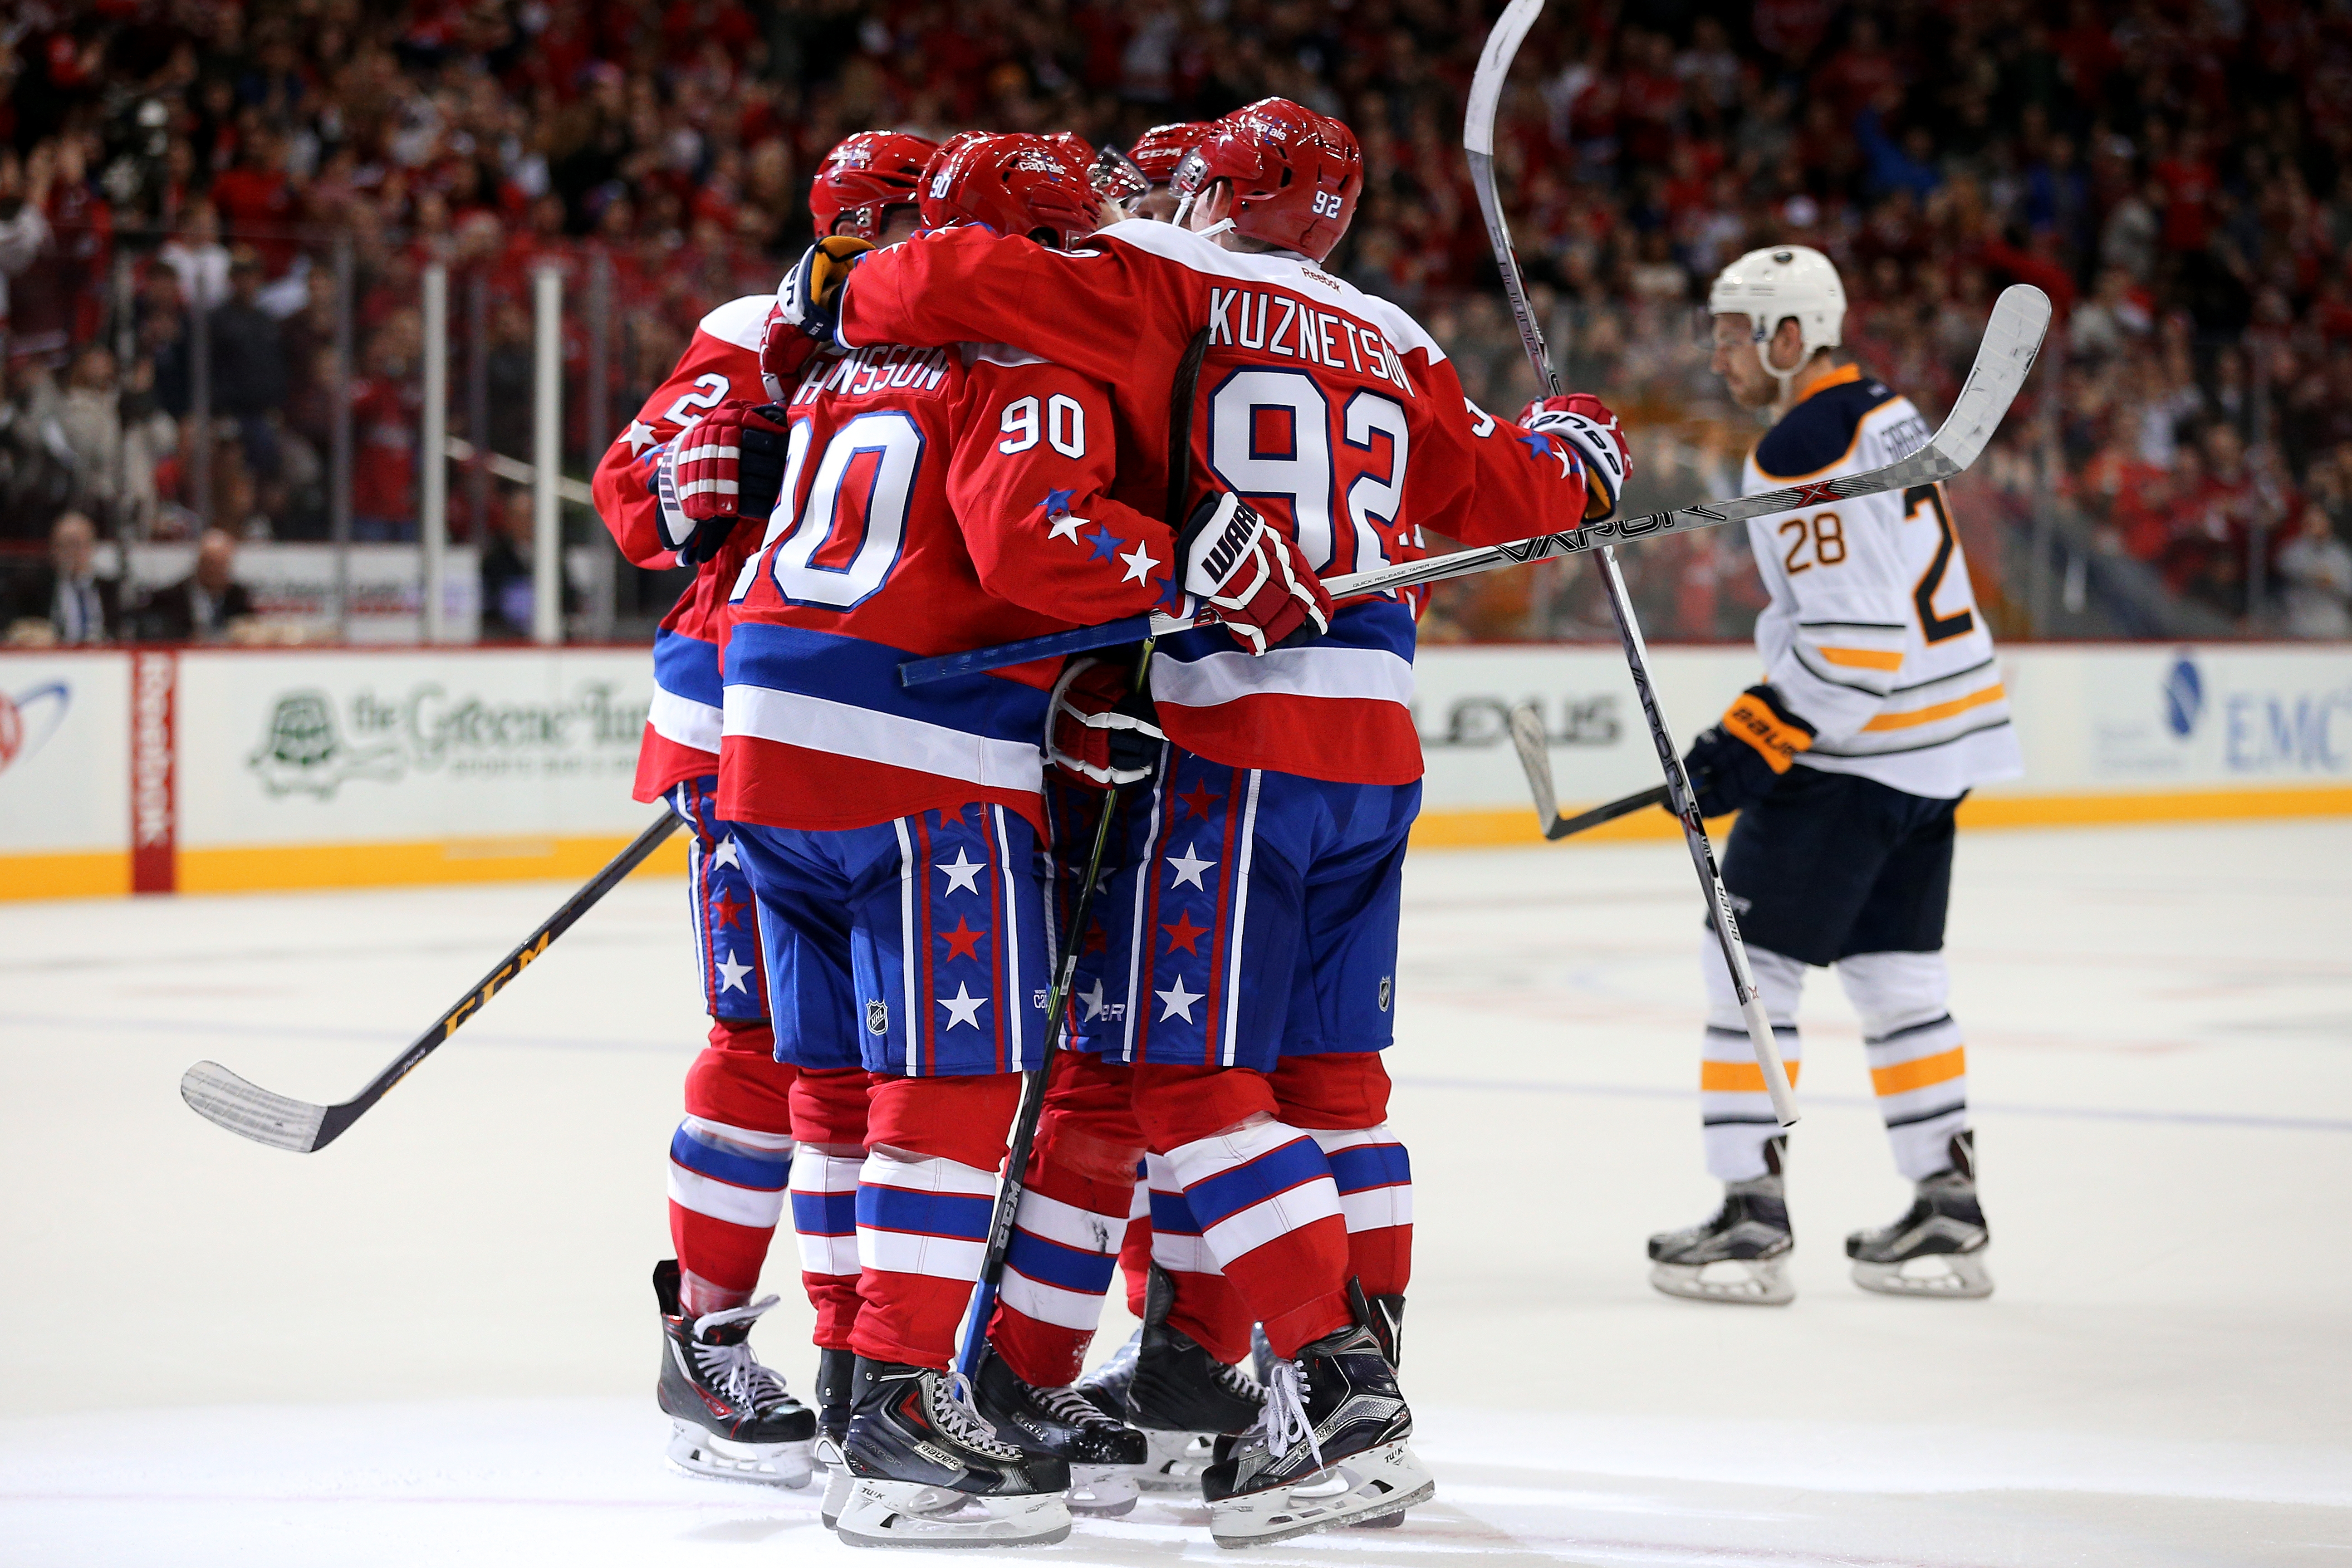 Justin Williams celebrates his second-period goal with his Washington teammates as the Capitals beat the Sabres for the second time in three days.